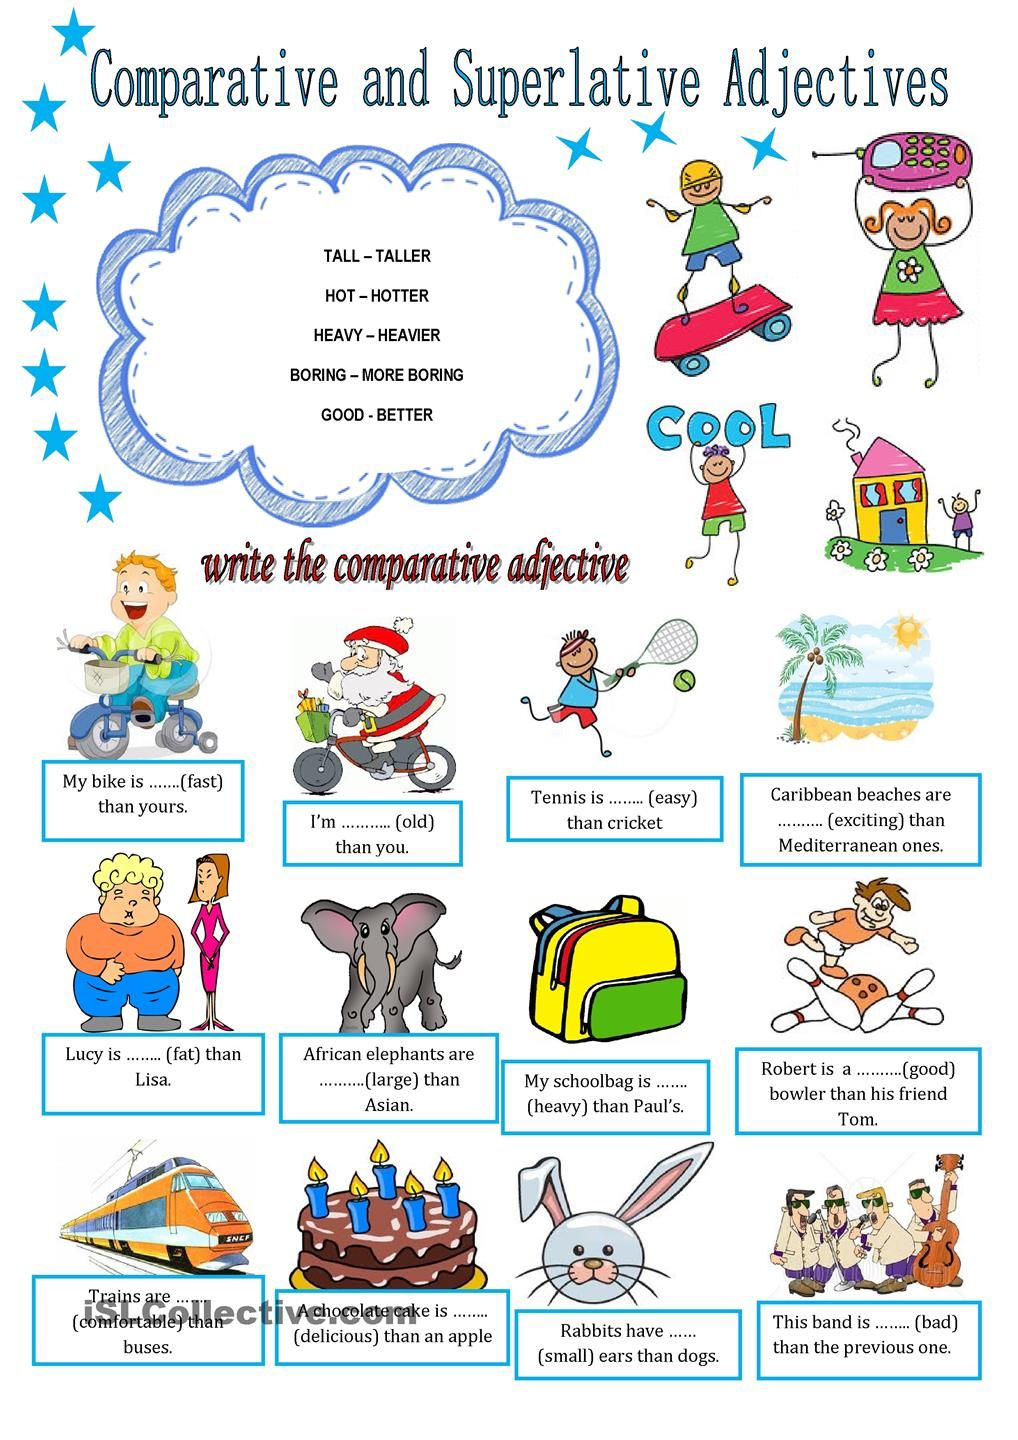 worksheet Comparative Adjectives Worksheets 10 images about adjectives on pinterest english grammar test lessons and student centered resources